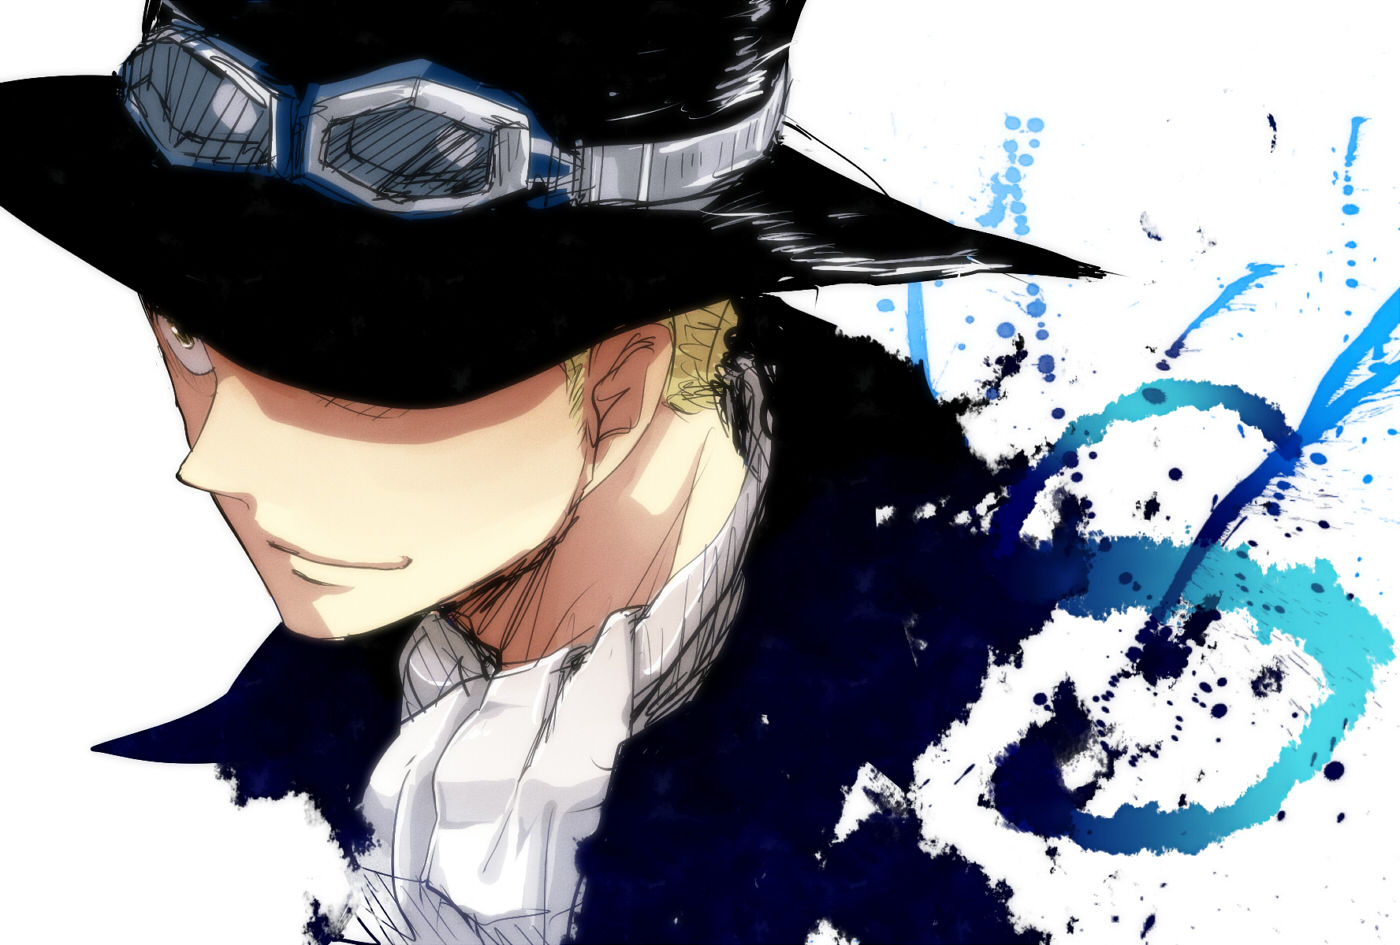 [Character] Sabo (Part 4) - One Piece Archive - OneManga ...